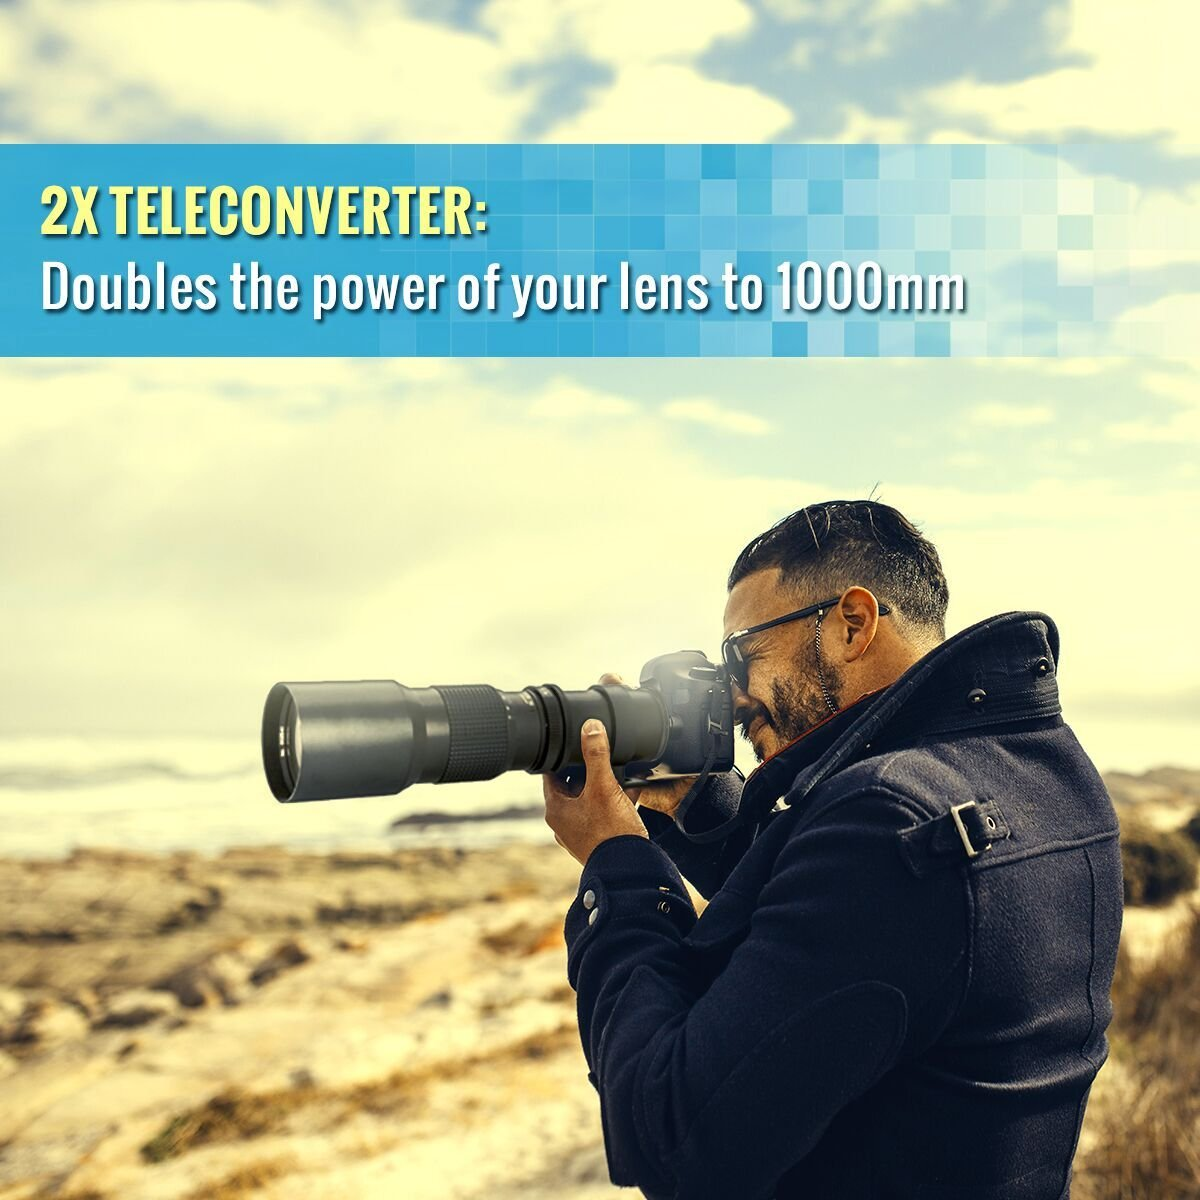 High-Power 500mm/1000mm f/8 Manual Telephoto Lens for Canon EOS Rebel T3, T3i, T4i, T5, T5i, T6, T6i, T6s, T7i, SL1, SL2, EOS 60D, 70D, 77D, 80D, 5D III, 5D IV, EOS 6D, 7D, 7D II Digital SLR Camera by Big Mike's (Image #3)